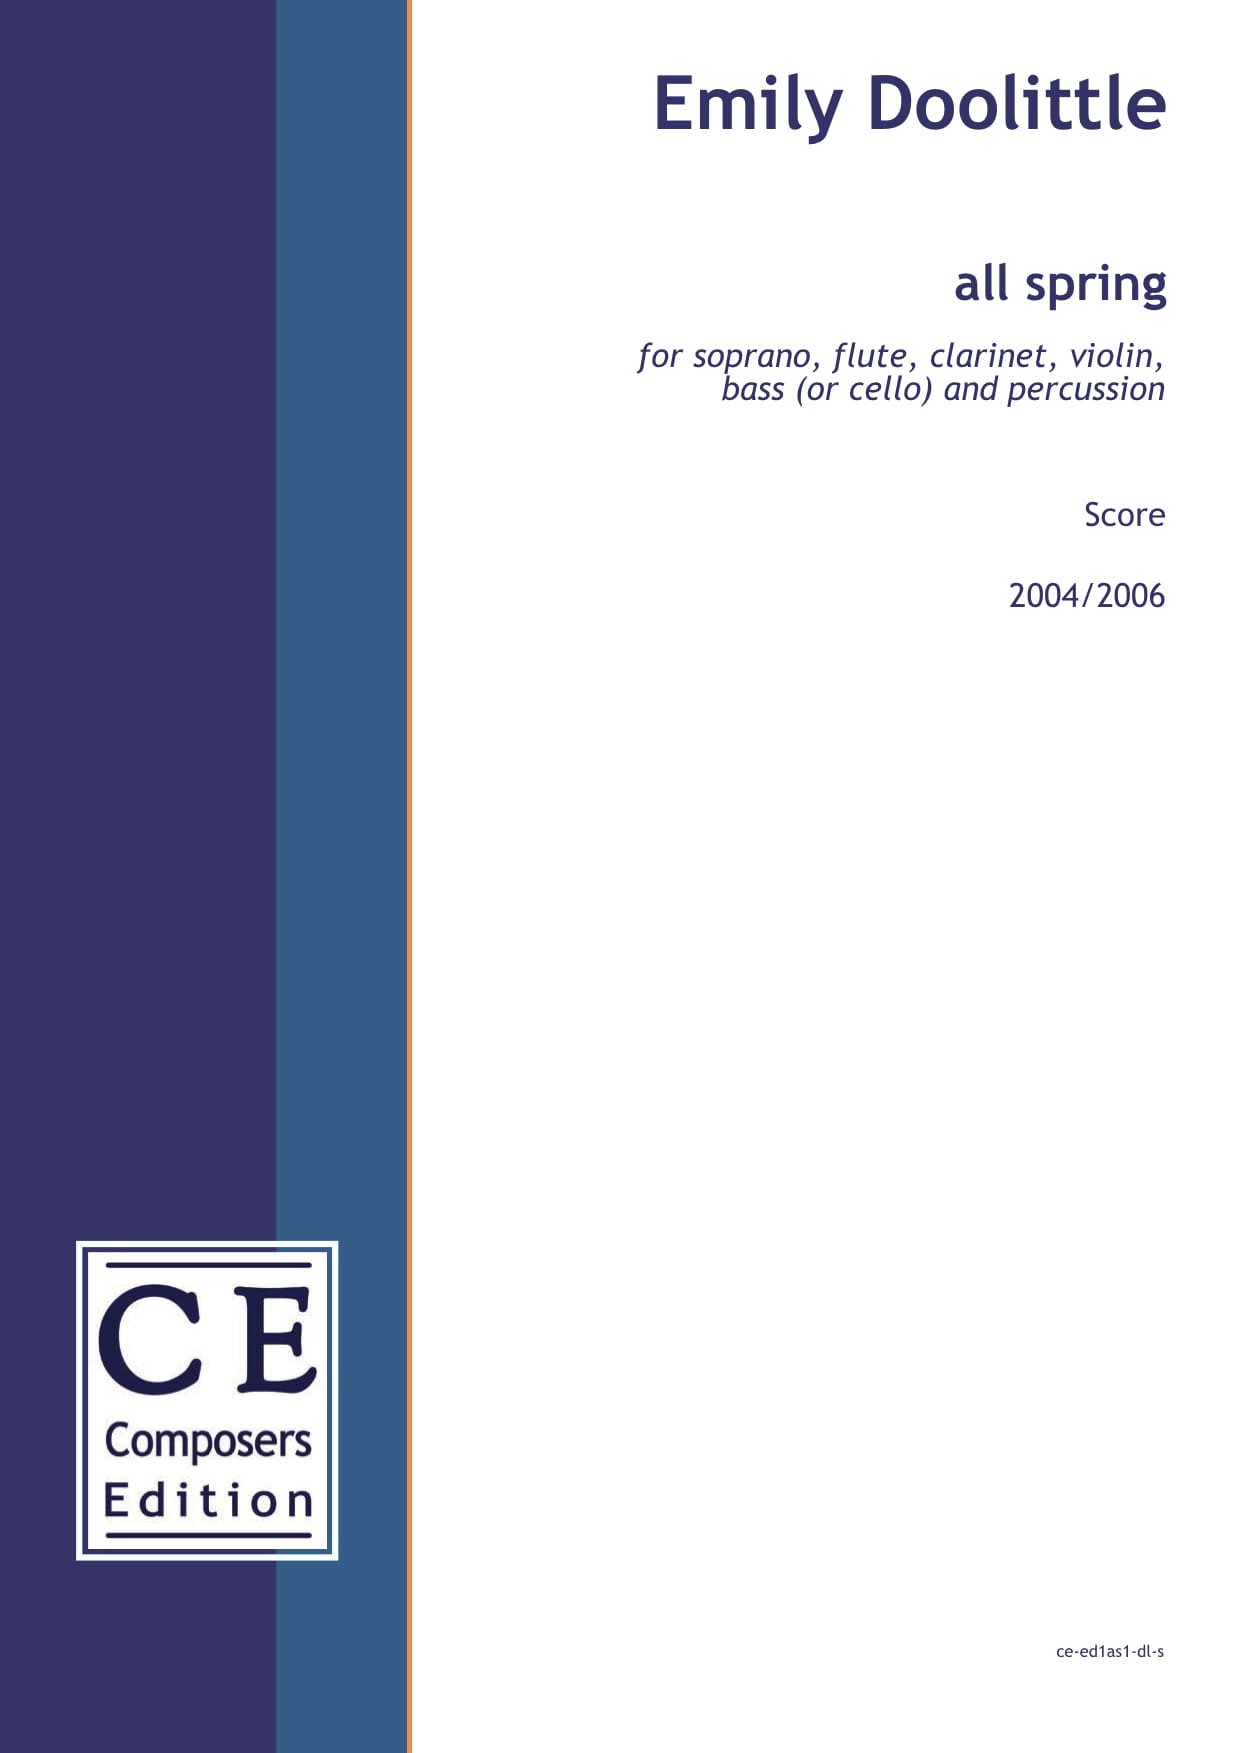 Emily Doolittle: all spring for soprano, flute, clarinet, violin, bass (or cello) and percussion